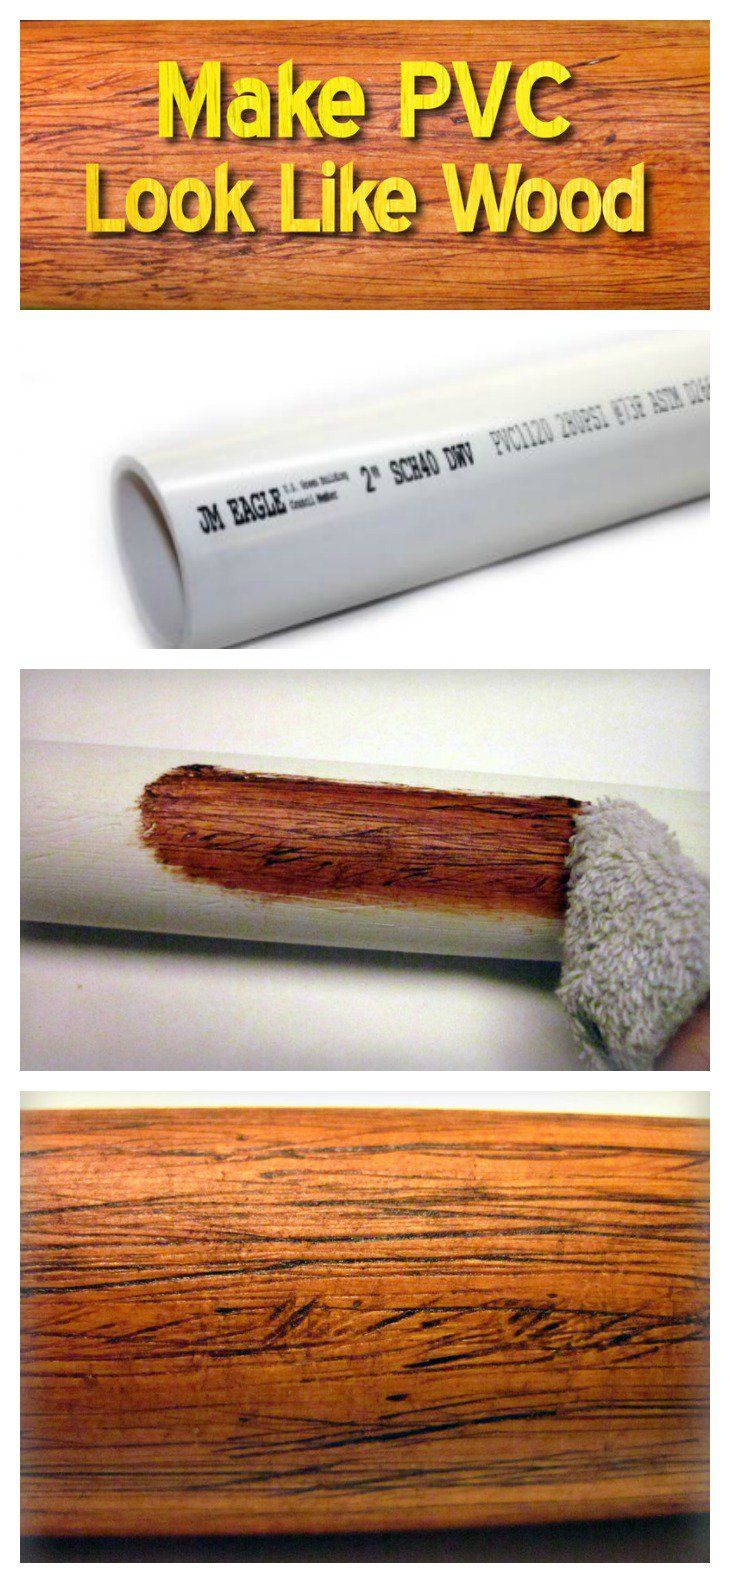 A Genius Idea to Make PVC Look Like Wood & A Genius Idea to Make PVC Look Like Wood | Woods Pvc pipe and Pvc ...